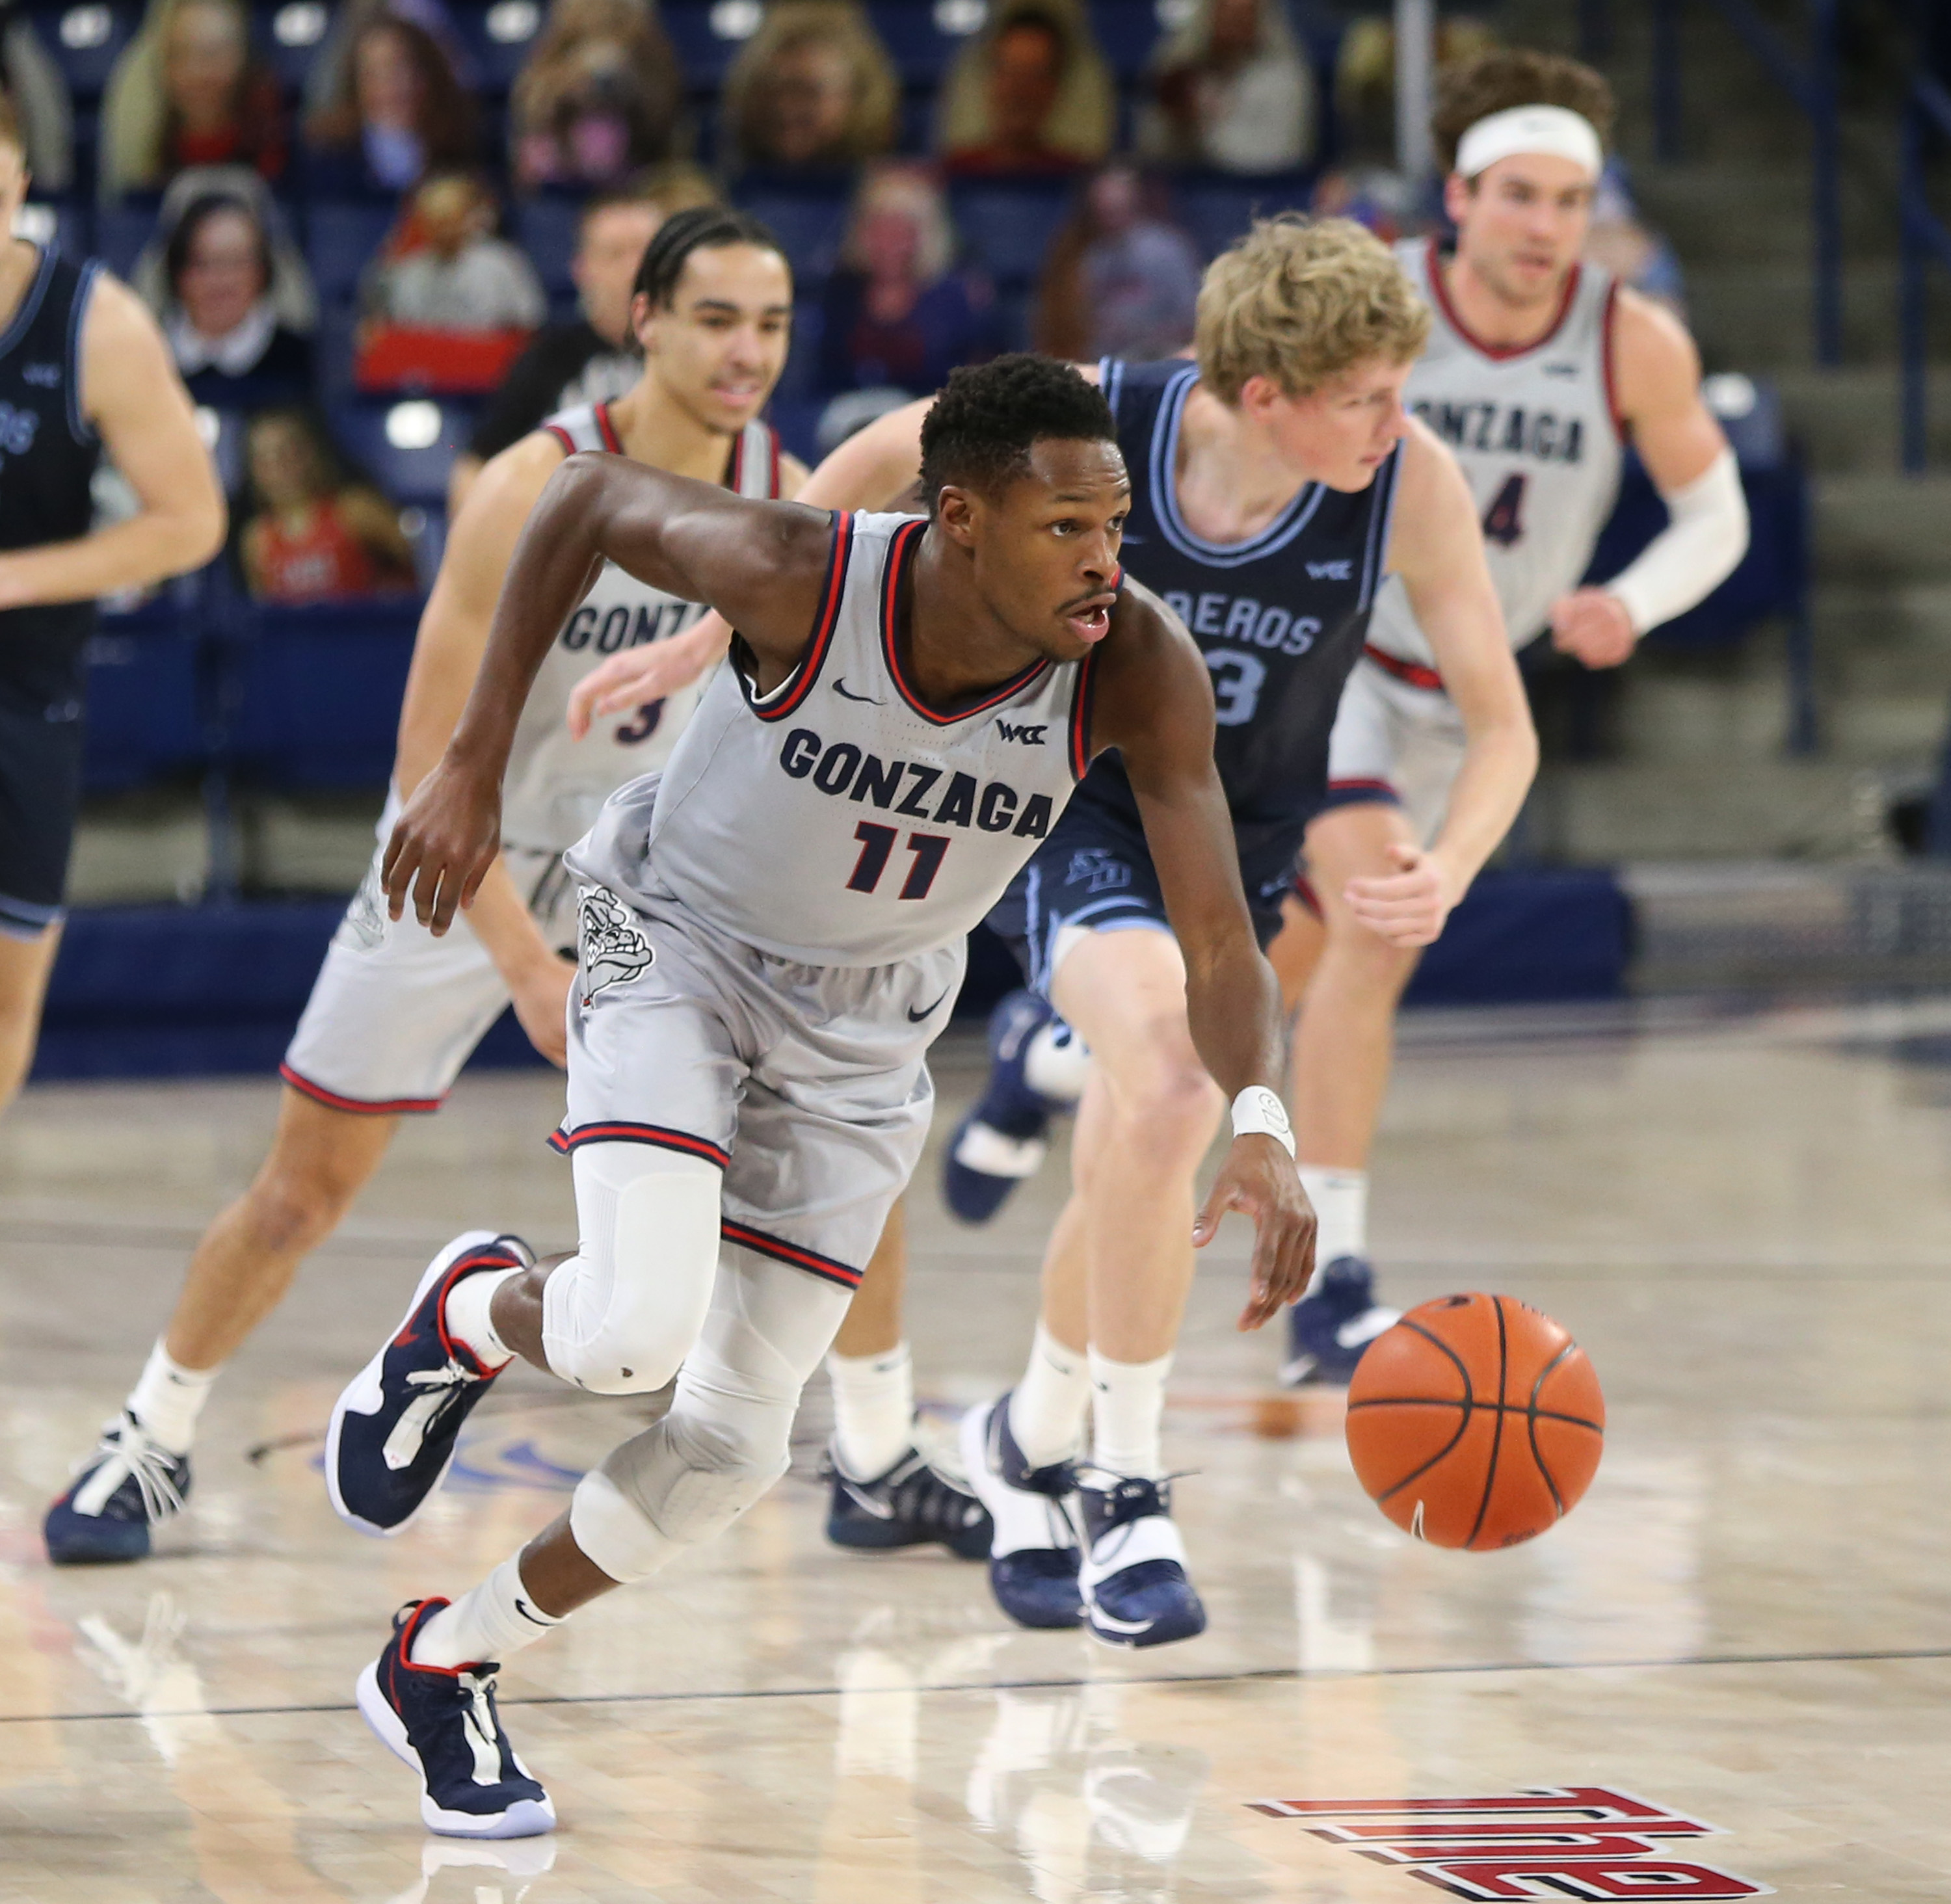 Joel Ayayi #11 of the Gonzaga Bulldogs drives the ball against the San Diego Toreros in the game at McCarthey Athletic Center on February 20, 2021 in Spokane, Washington.